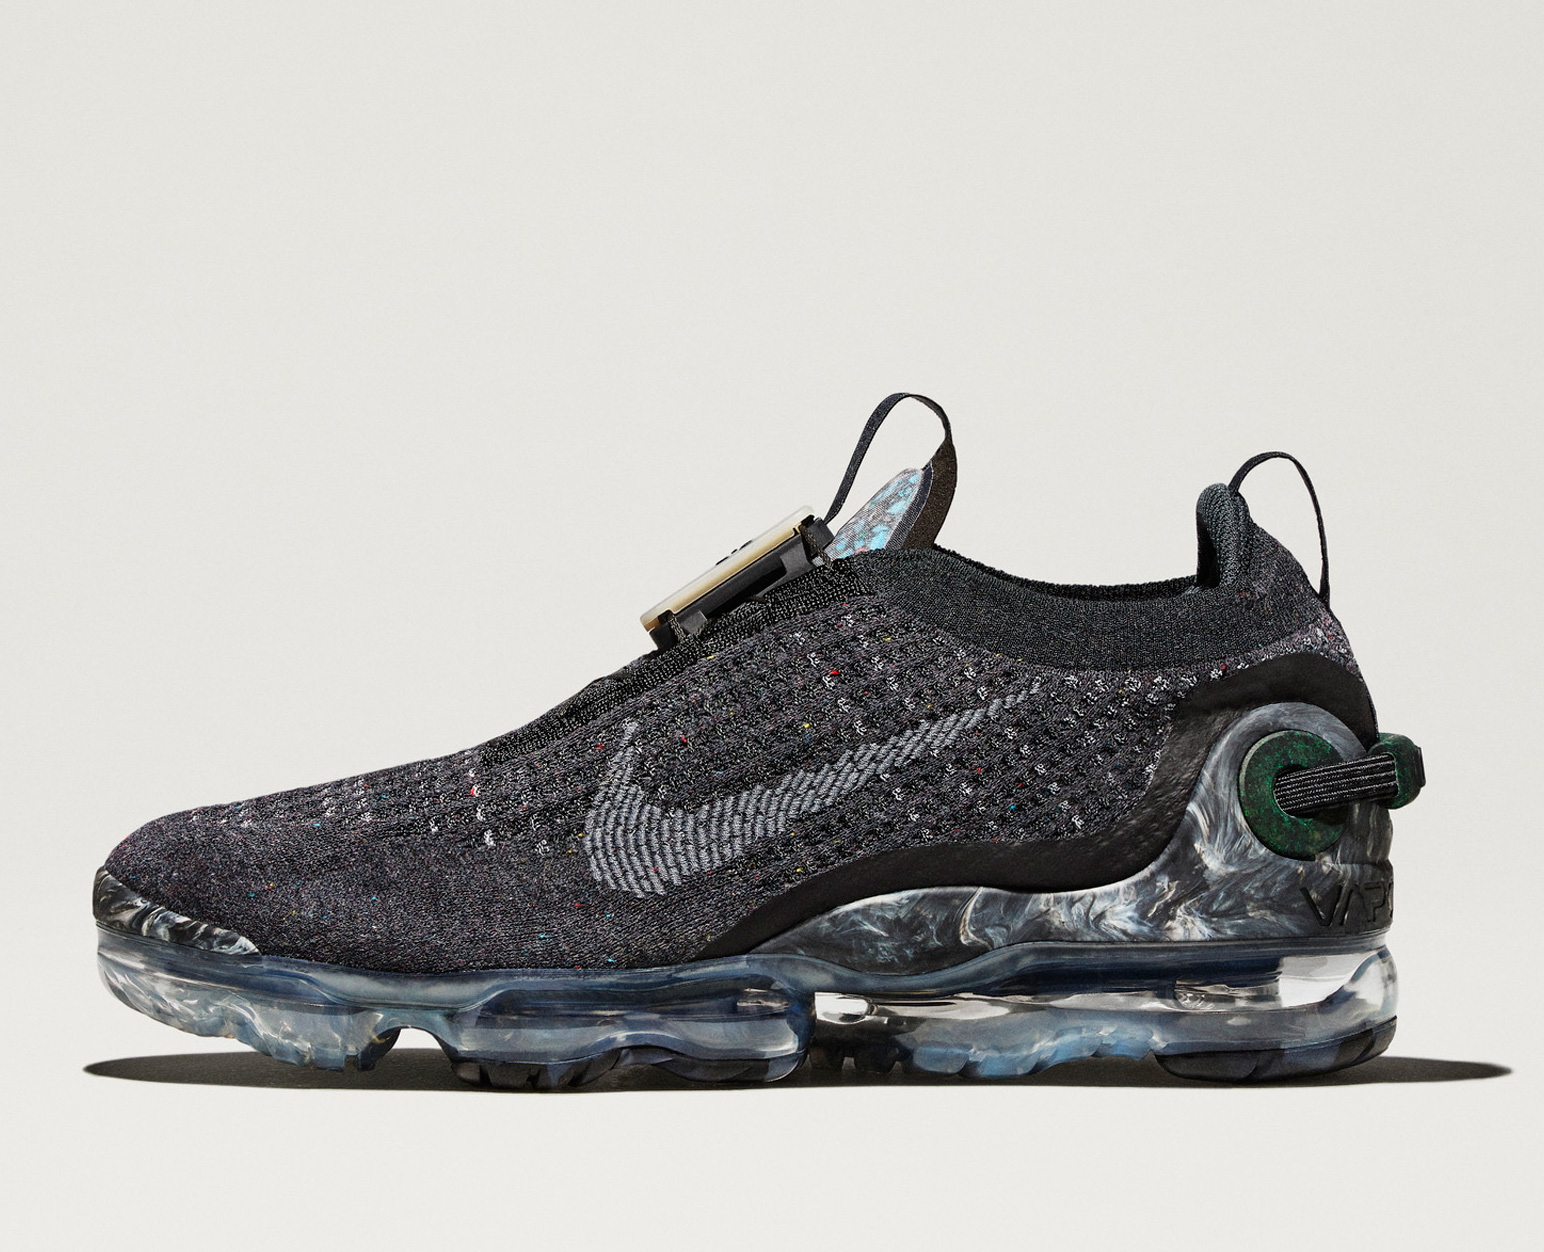 Air VaporMax 2020 Flyknit is Nike's Most Sustainable Shoe Yet at werd.com